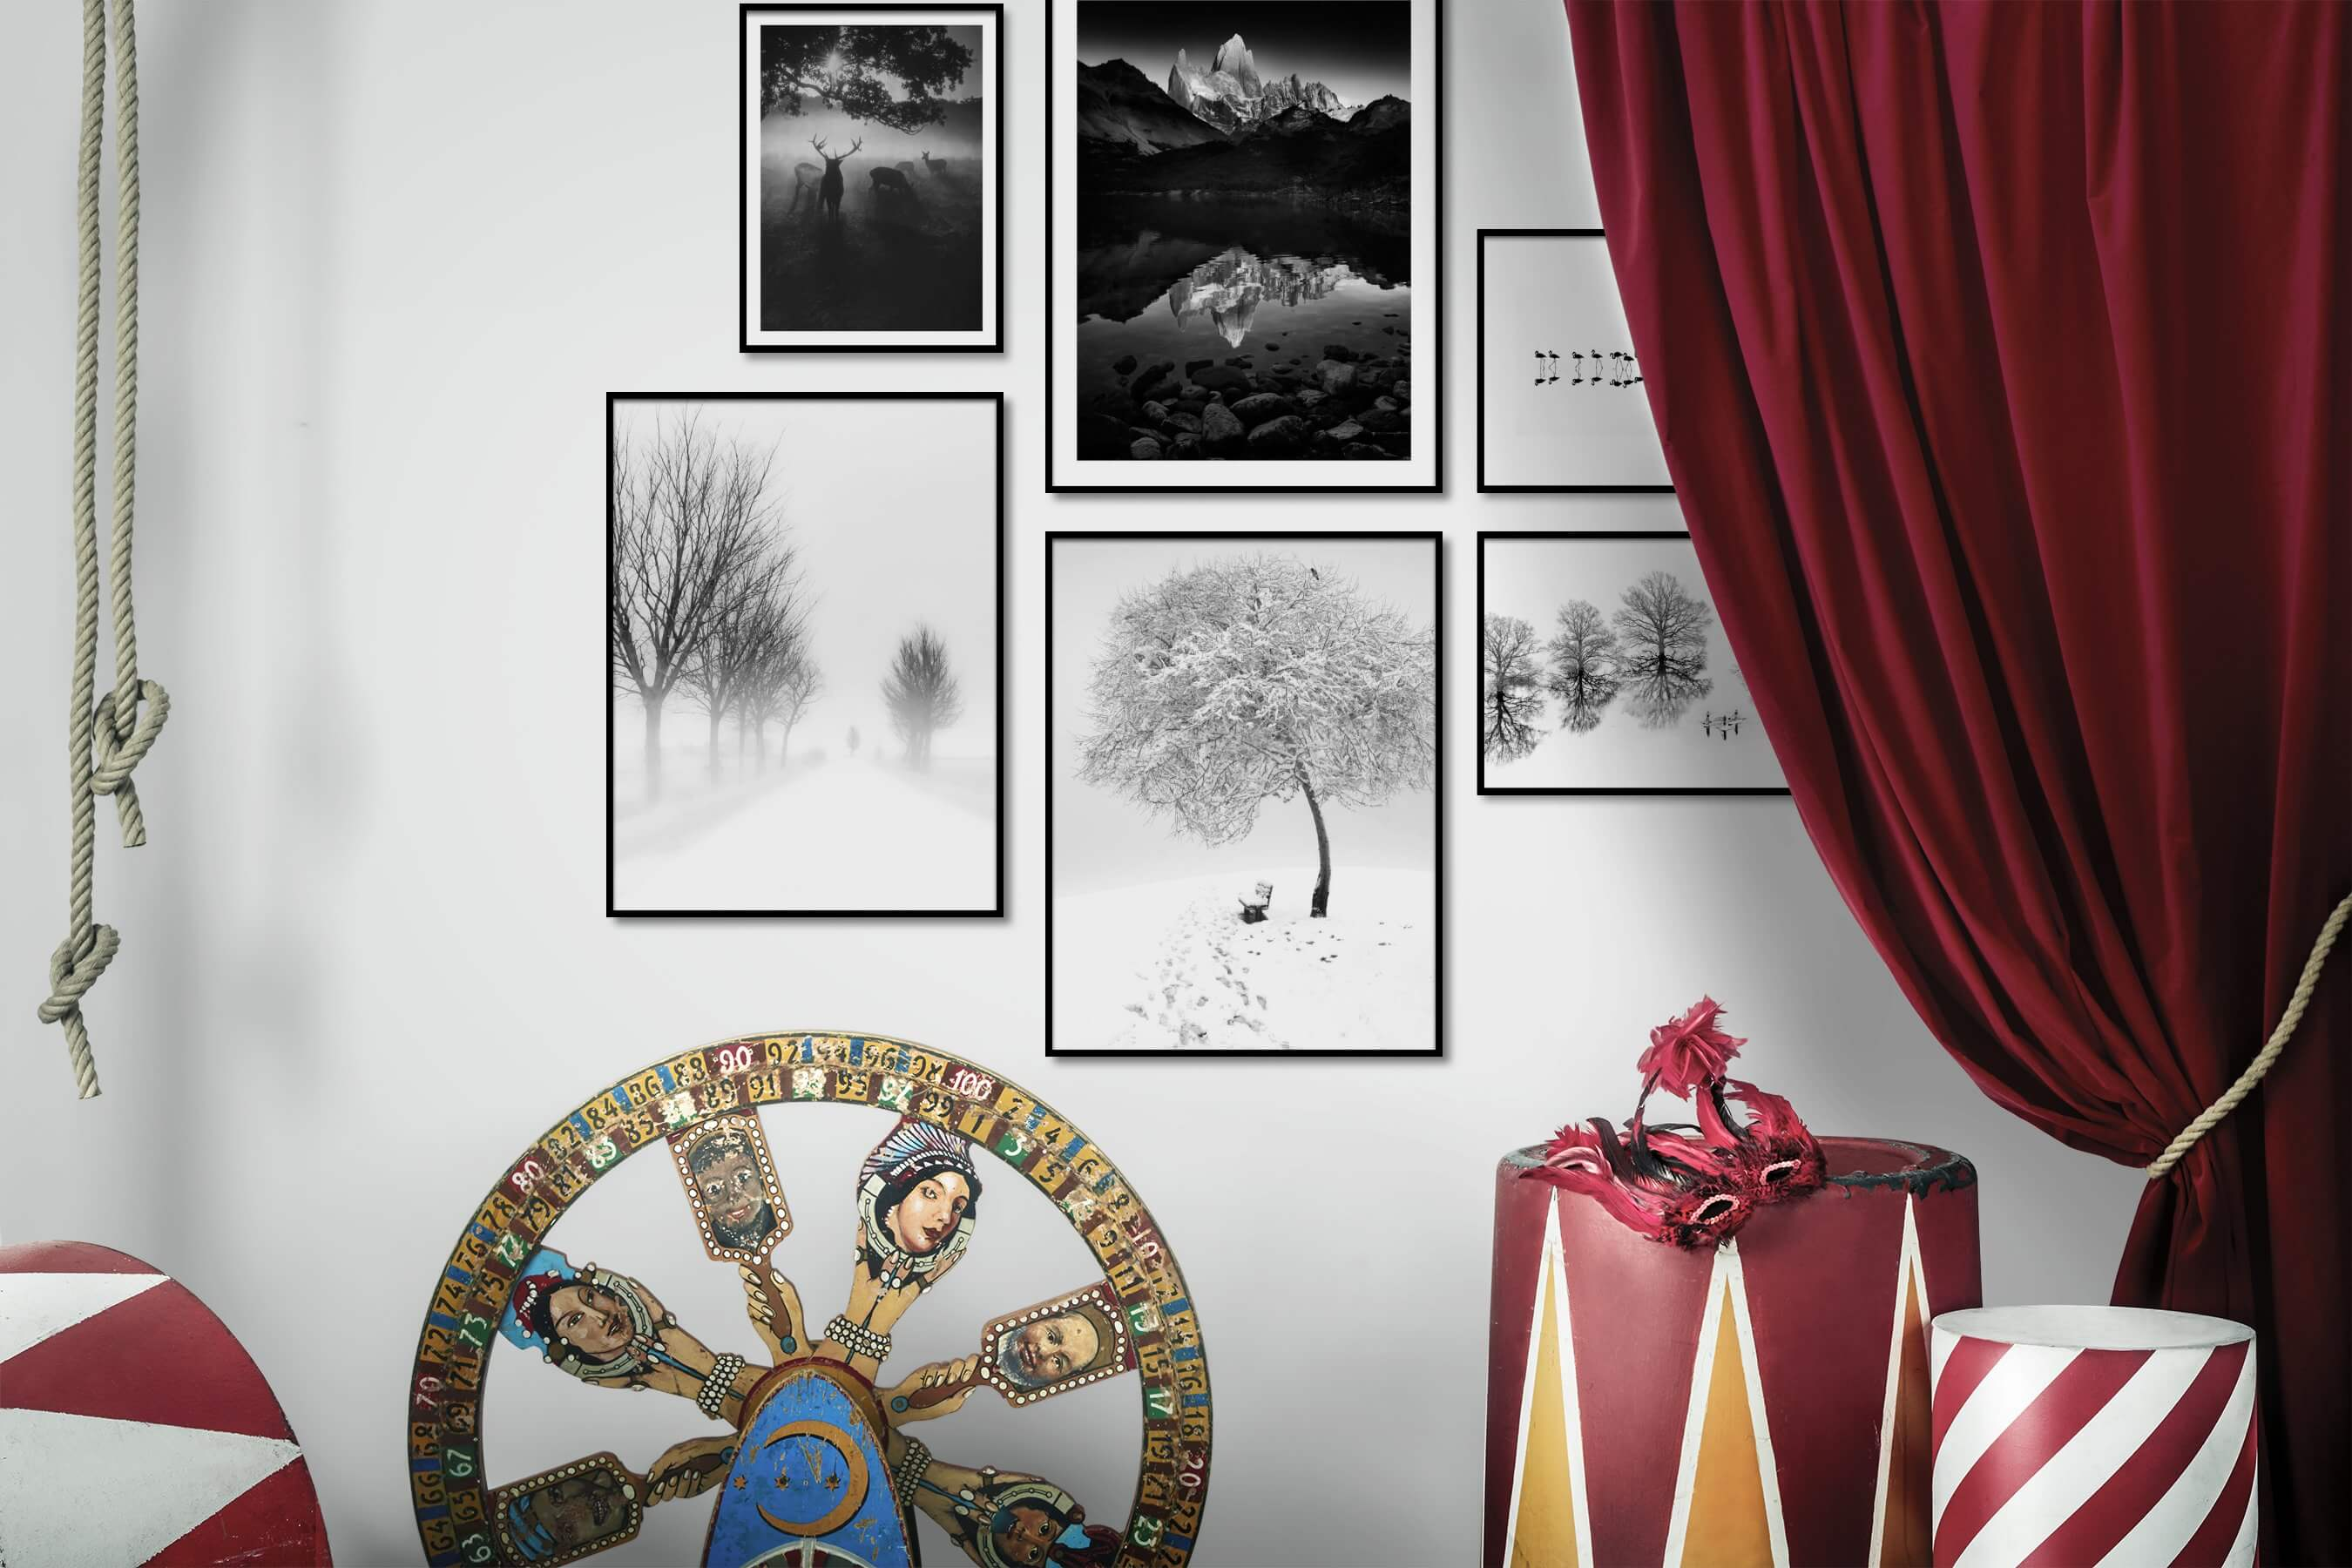 Gallery wall idea with six framed pictures arranged on a wall depicting Black & White, Animals, Nature, Bright Tones, For the Minimalist, Country Life, and Beach & Water